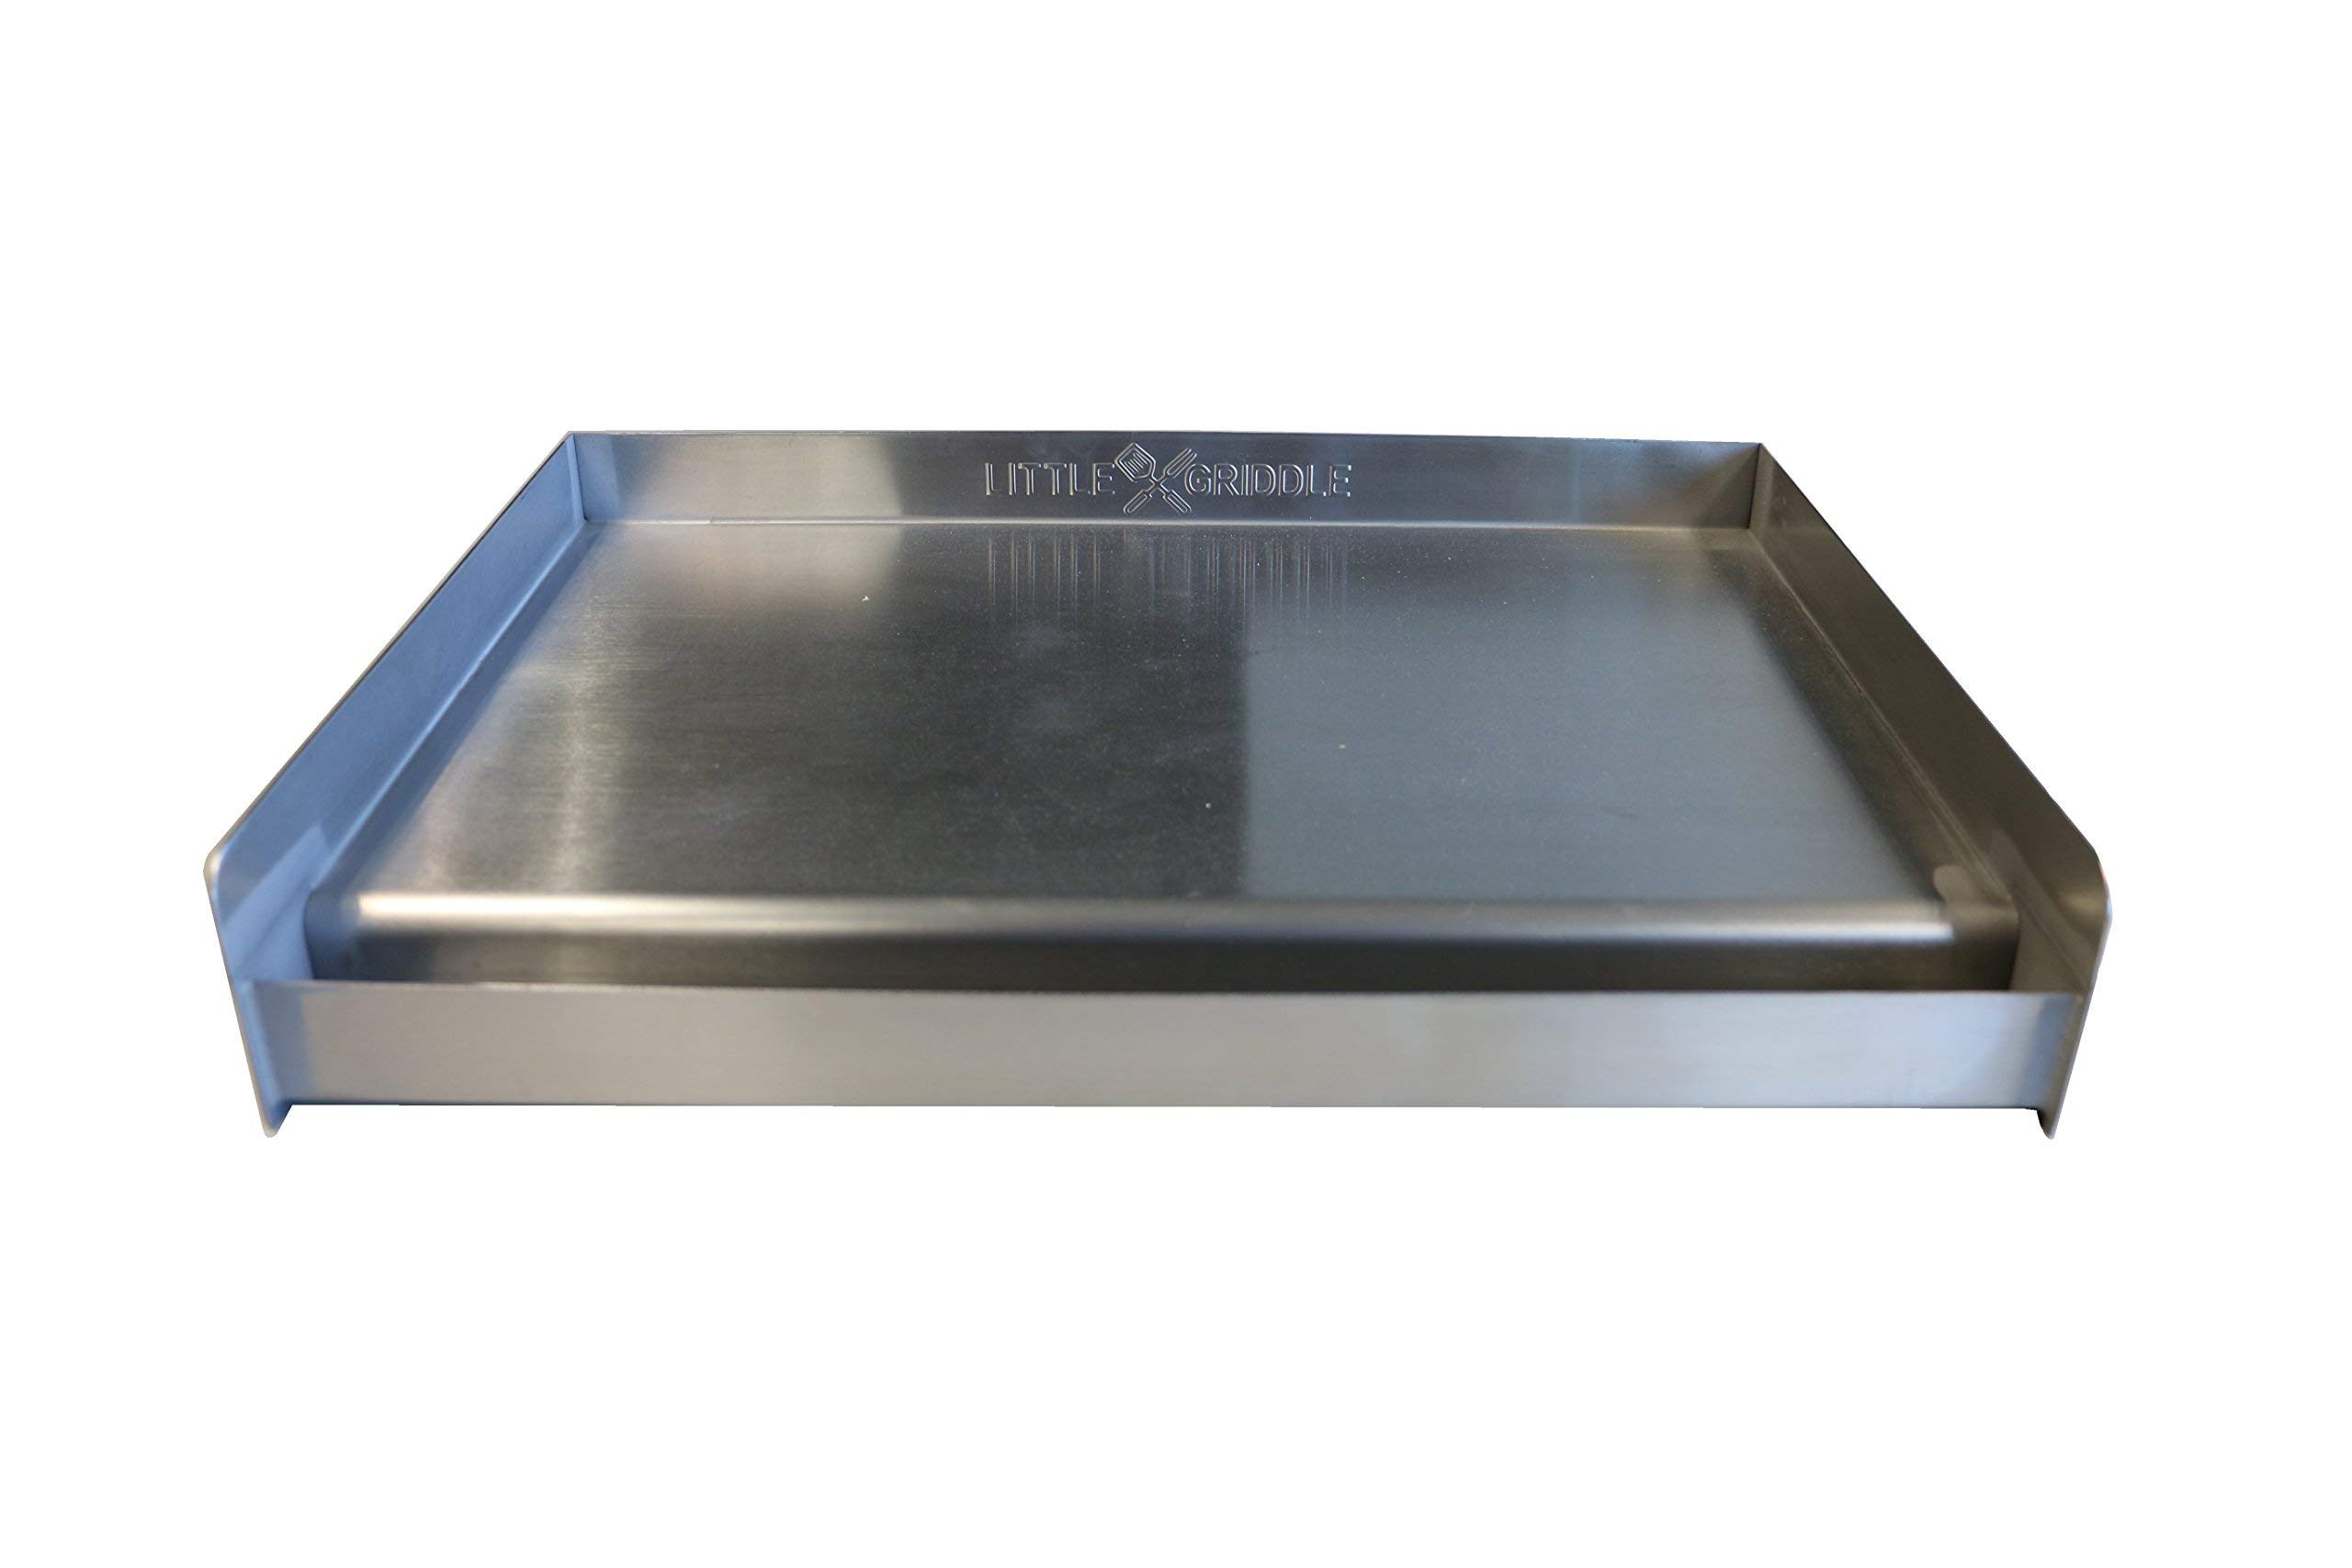 Little Griddle SQ180 100% Stainless Steel Universal Griddle with Even Heating Cross Bracing for Charcoal/Gas Grills, Camping, Tailgating, and Parties (18''x13''x3'') (Renewed) by Little Griddle